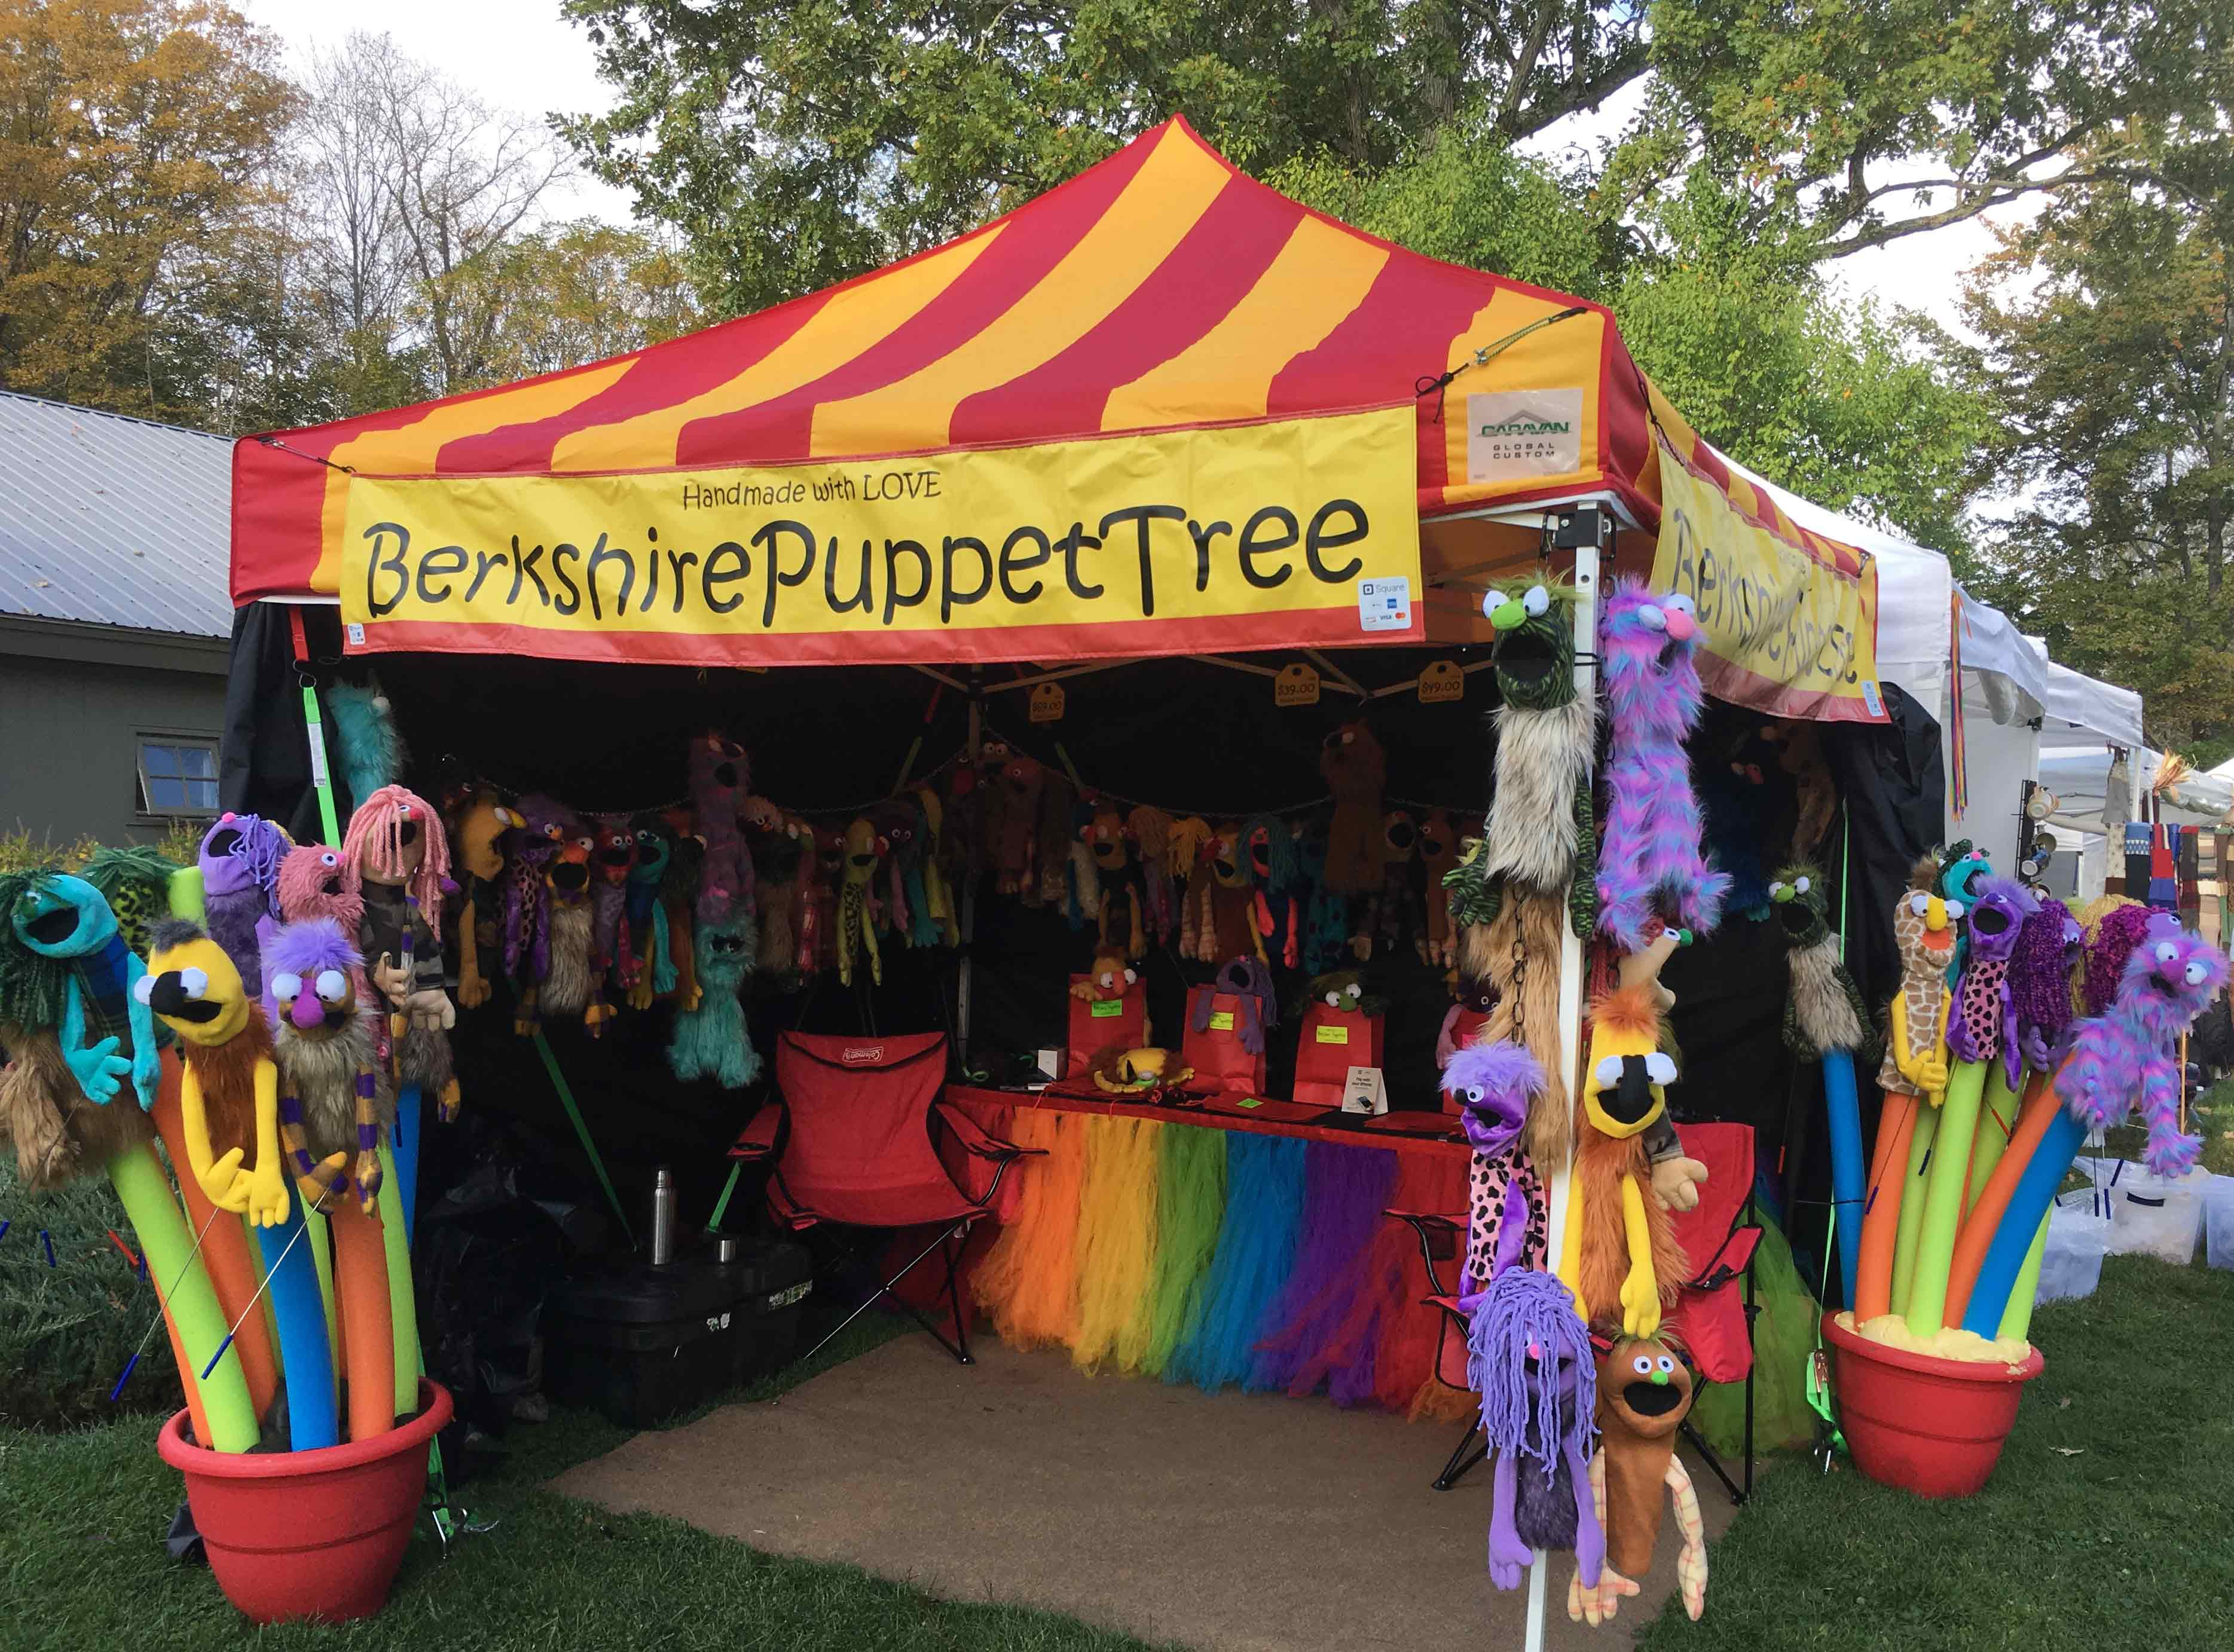 Berkshire Puppet Tree by Bruce Forster, handmade puppets